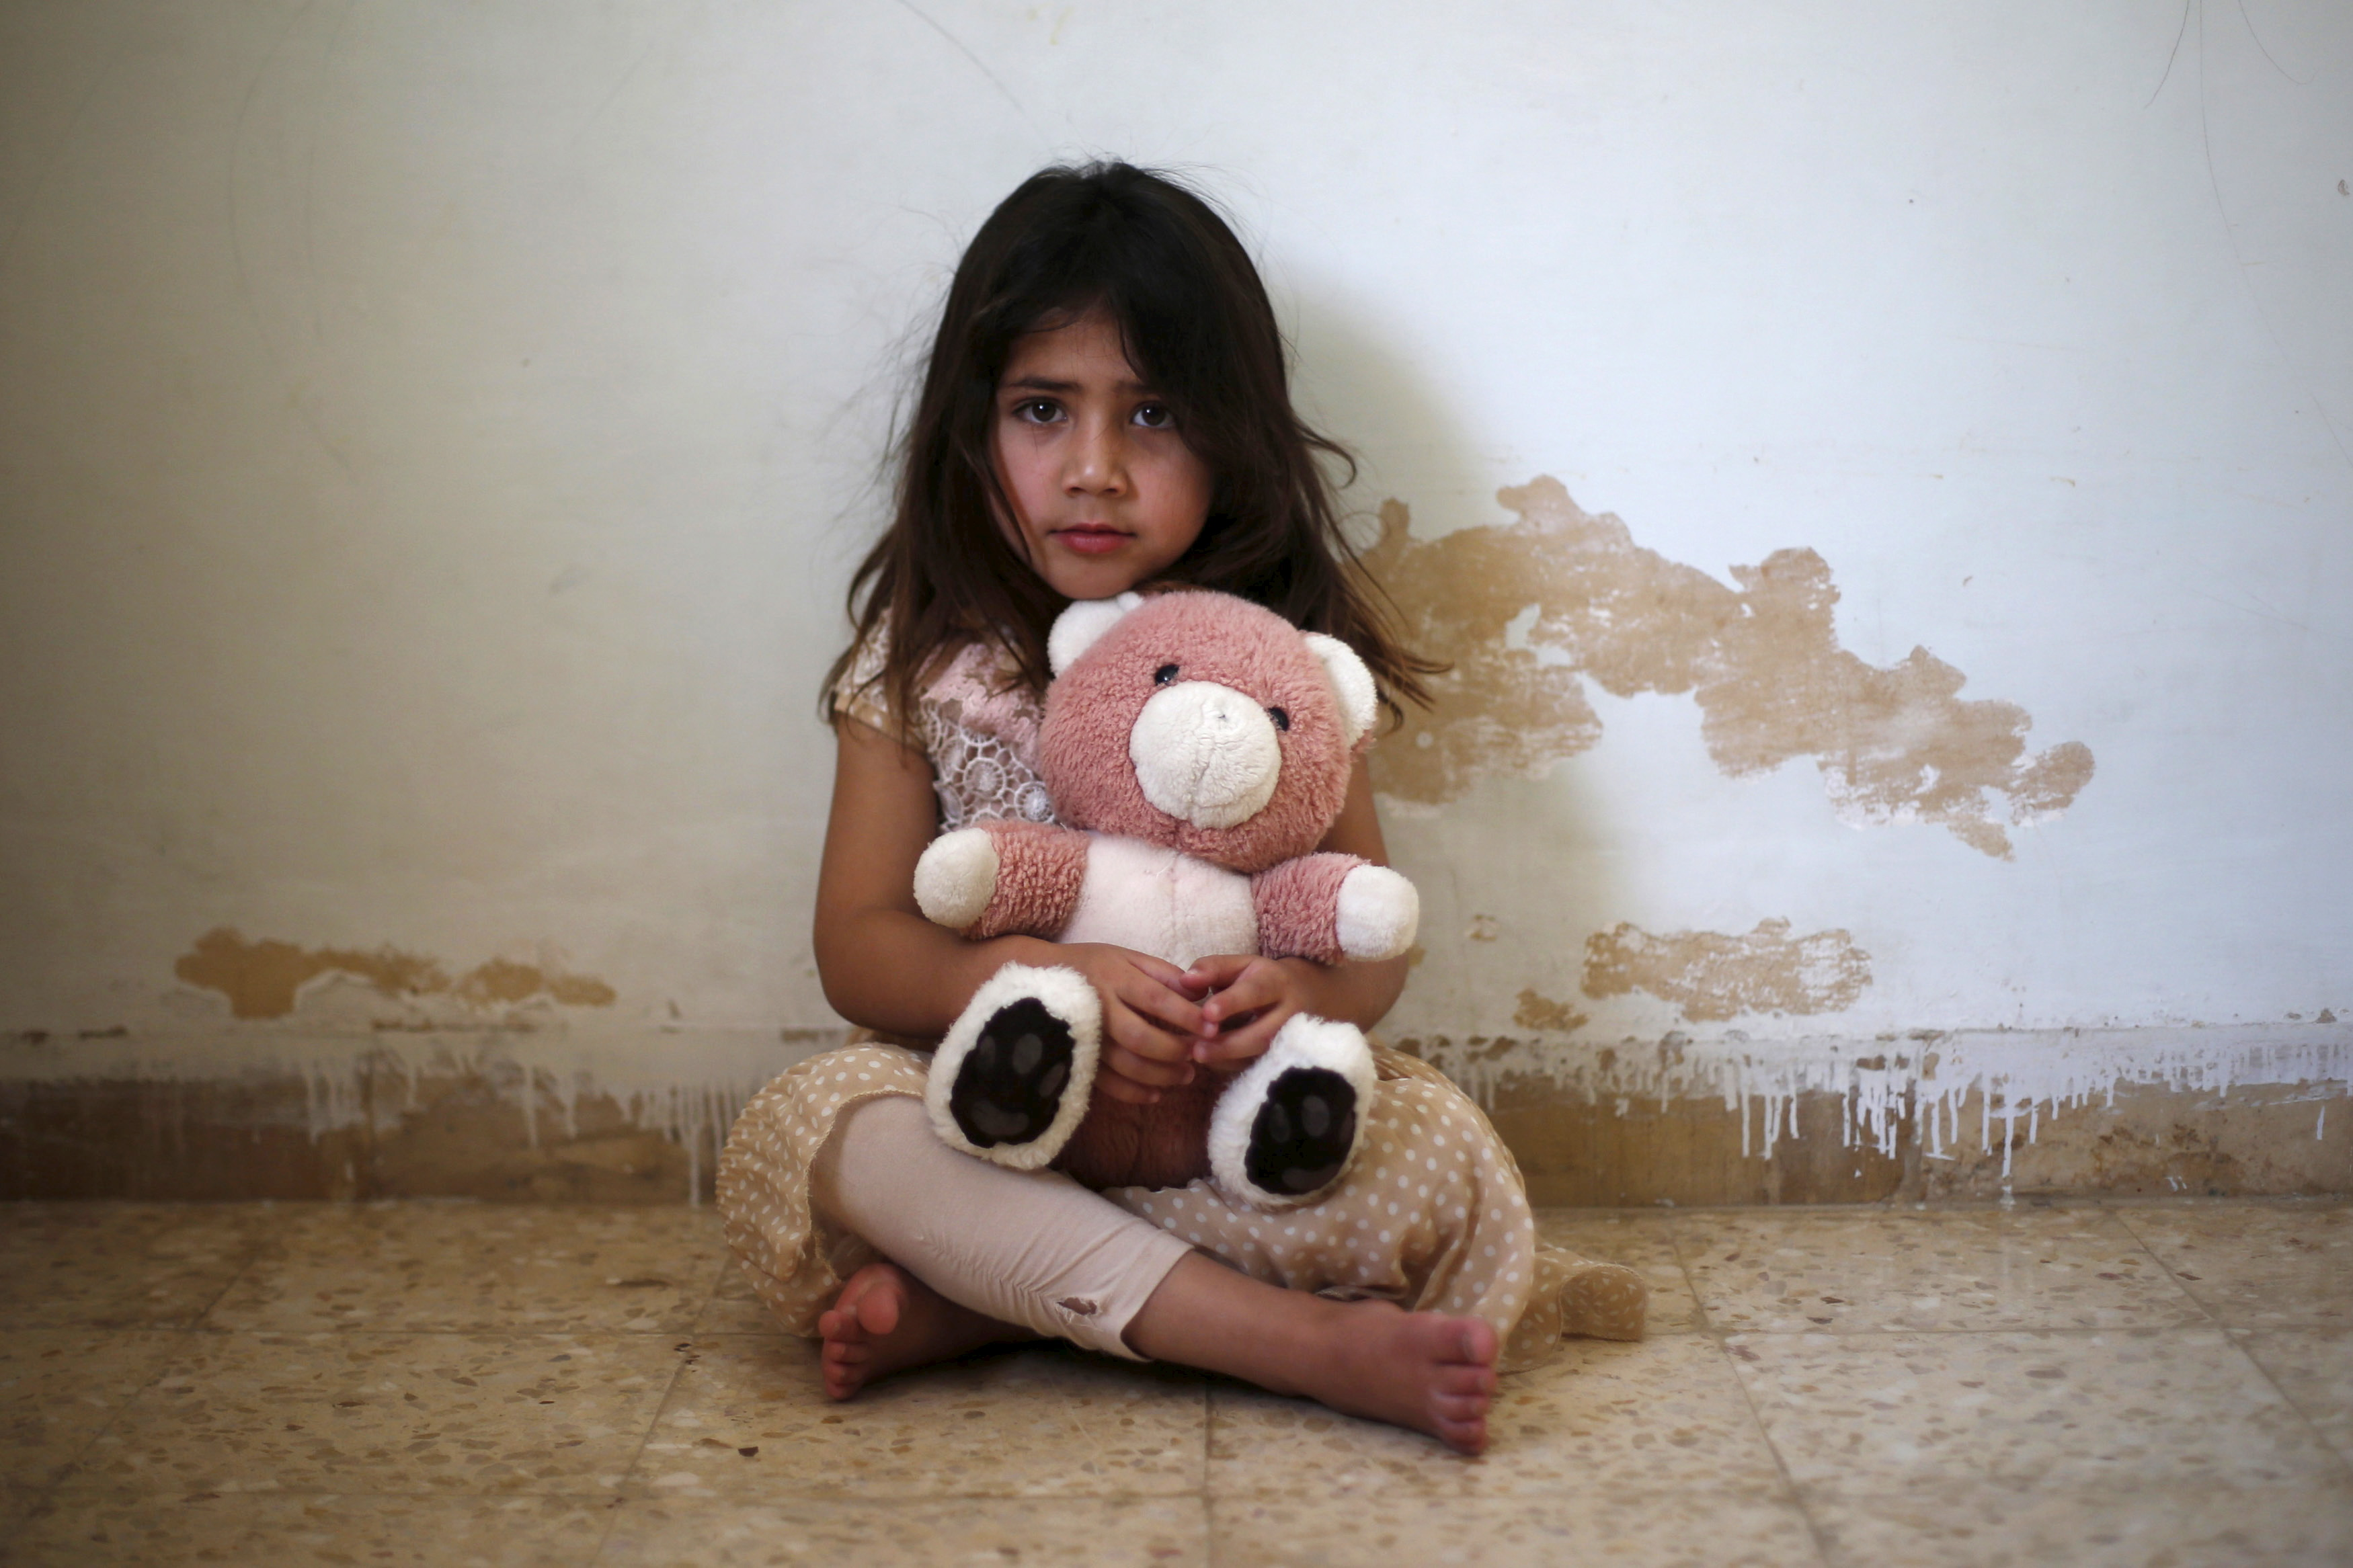 Asmaa, the daughter of Abdul Rahaman al-Sarhan, a blind Syrian refugee, poses with her toy as she plays in her family home in the city of Zarqa, Jordan, June 18, 2015. Sarhan and his family of seven fled from their home in Damascus to Jordan about two and a half years ago. After the World Food Program reduced their humanitarian aid vouchers, Sarhan's sons, Jaber, 15, and Mohammad, 13, had to leave school in Zarqa in Jordan, to find jobs to help feed the family.